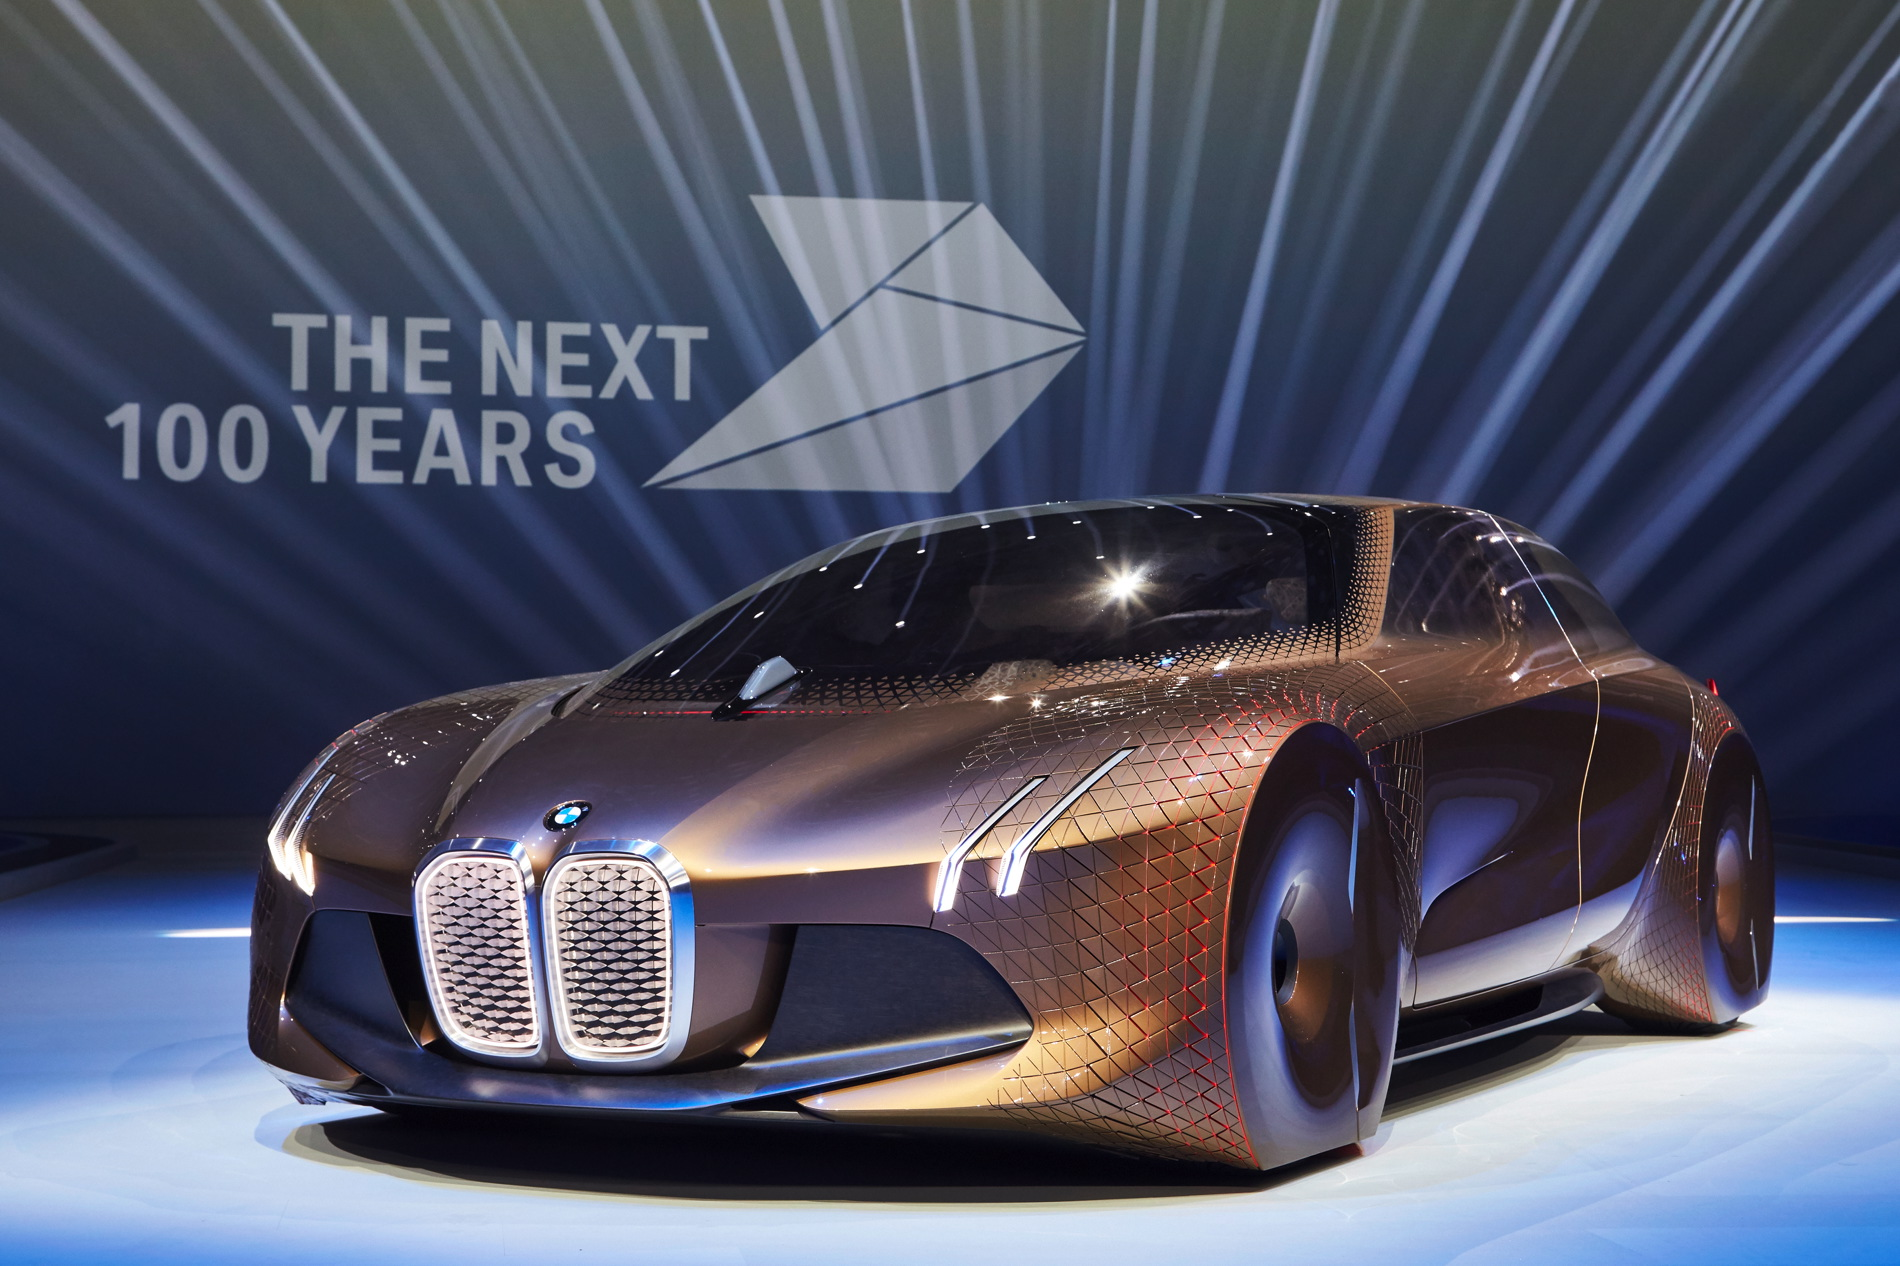 BMW VISION NEXT 100 images 28 1